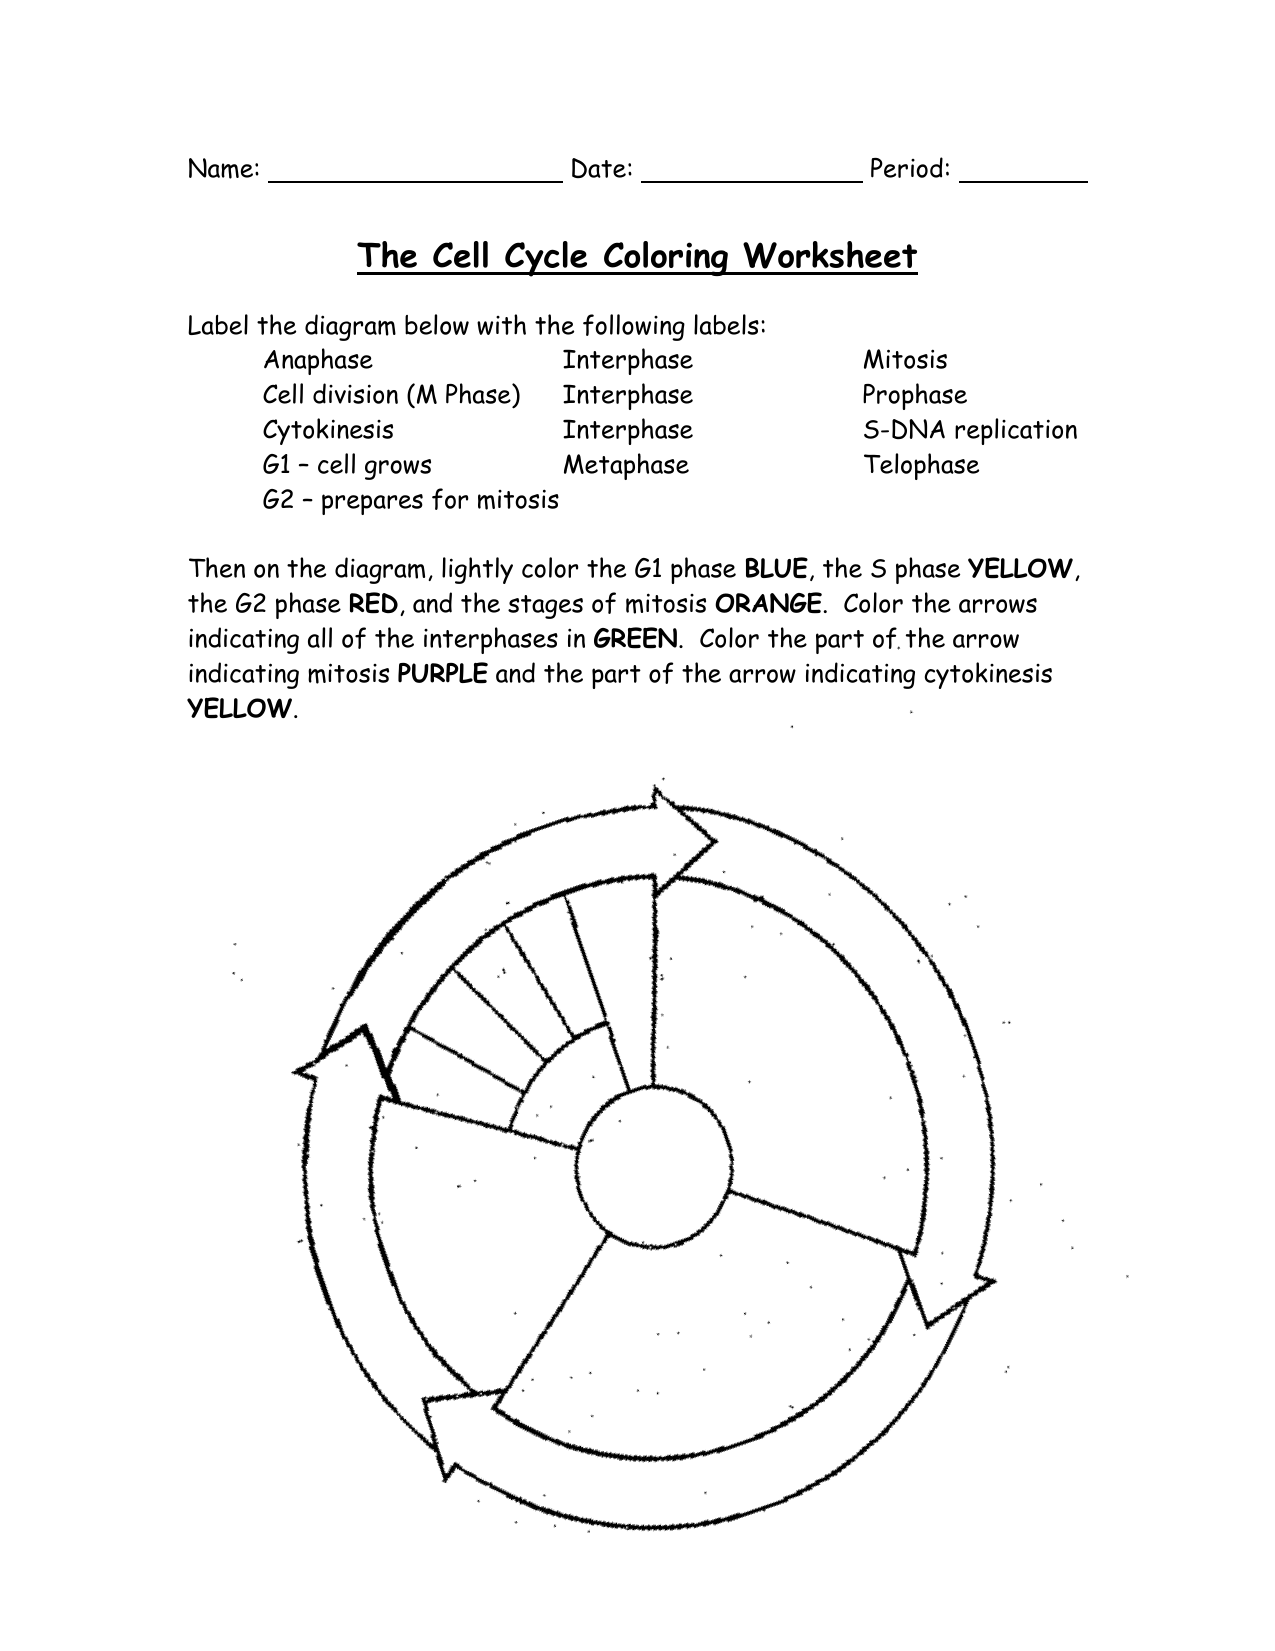 The Cell Cycle Coloring Worksheet 242938 why Does Oshkosh Jog Around as well The Cell Cycle Coloring Worksheet additionally  as well Cell Coloring Worksheet Animal Cell Coloring Worksheet Pages Plant in addition cell cycle and mitosis coloring answer key – littapes also cell cycle and mitosis coloring packet answer key – kreater co likewise Awesome Cell Cycle Coloring Worksheet Plus The Cell Cycle Coloring as well the cell cycle worksheet 650 298   The Cell Cycle Coloring Worksheet additionally The Cell Cycle Coloring Worksheet Answers – 167 86 79 60 in addition the cell cycle worksheet 600 800   The Cell Cycle Coloring Worksheet besides cell division worksheets – primalvape co besides  in addition I'm writing short essay on the original on experiment and am additionally cell division and mitosis worksheets answers – erbeebetty further mitosis coloring pages – ecancerargentina org further . on the cell cycle coloring worksheet